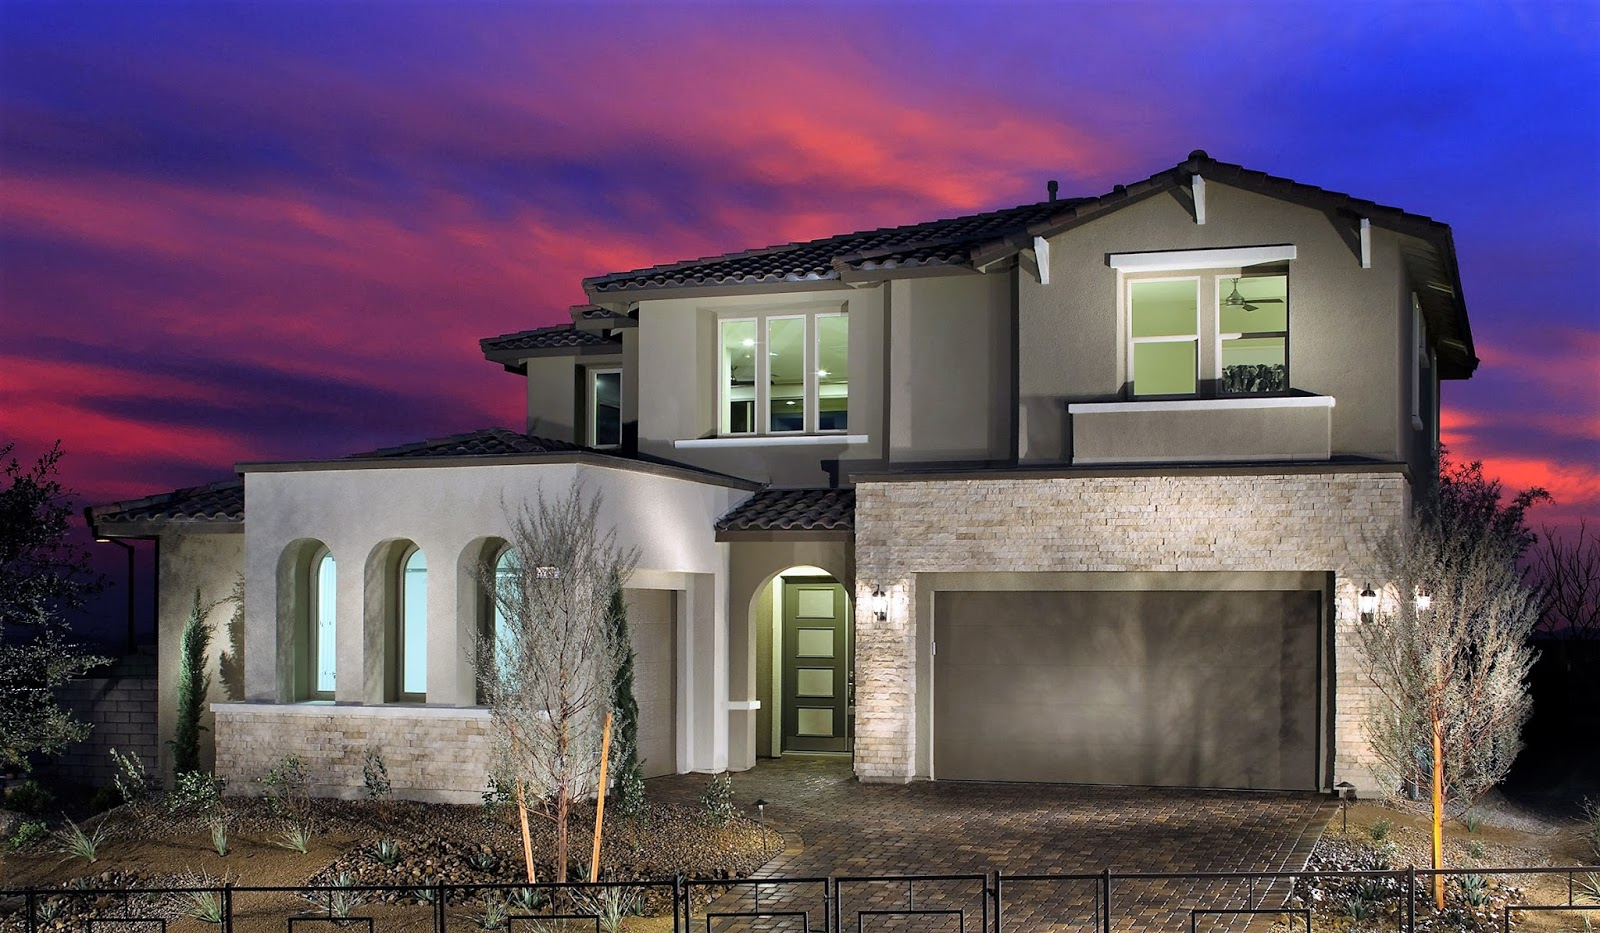 New Homes For Sale In Summerlin Las Vegas